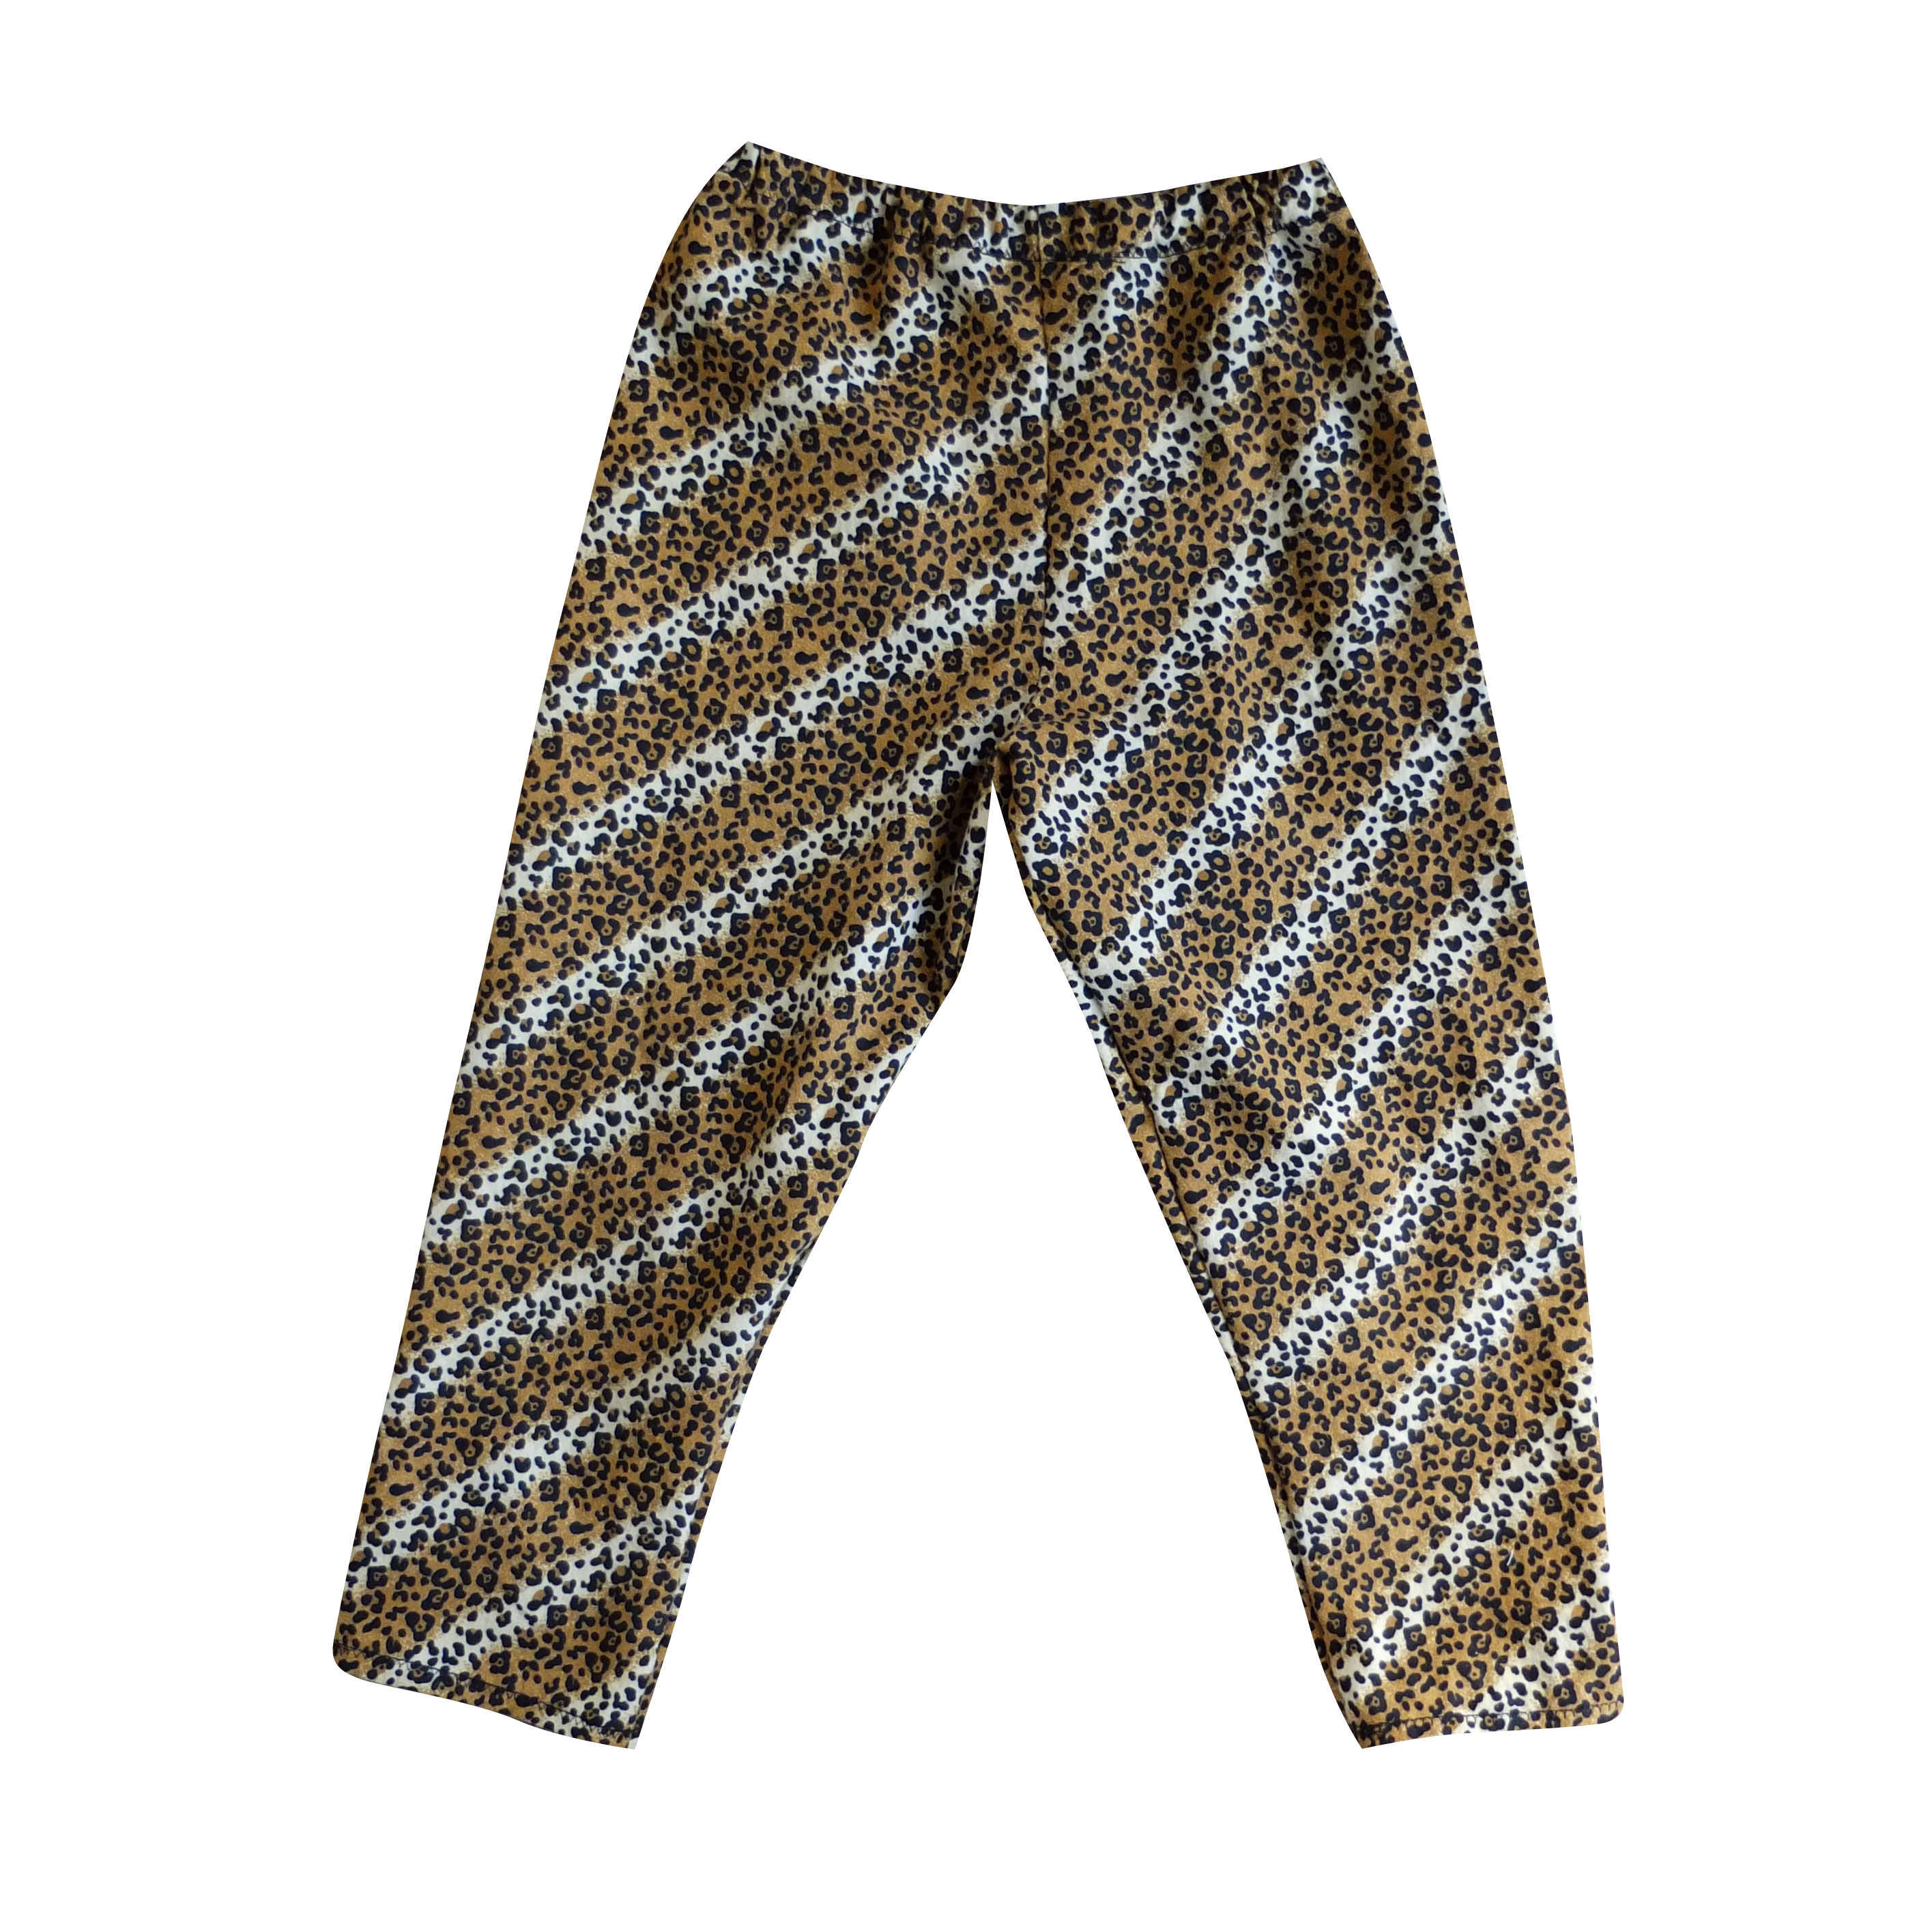 Small leopard pants